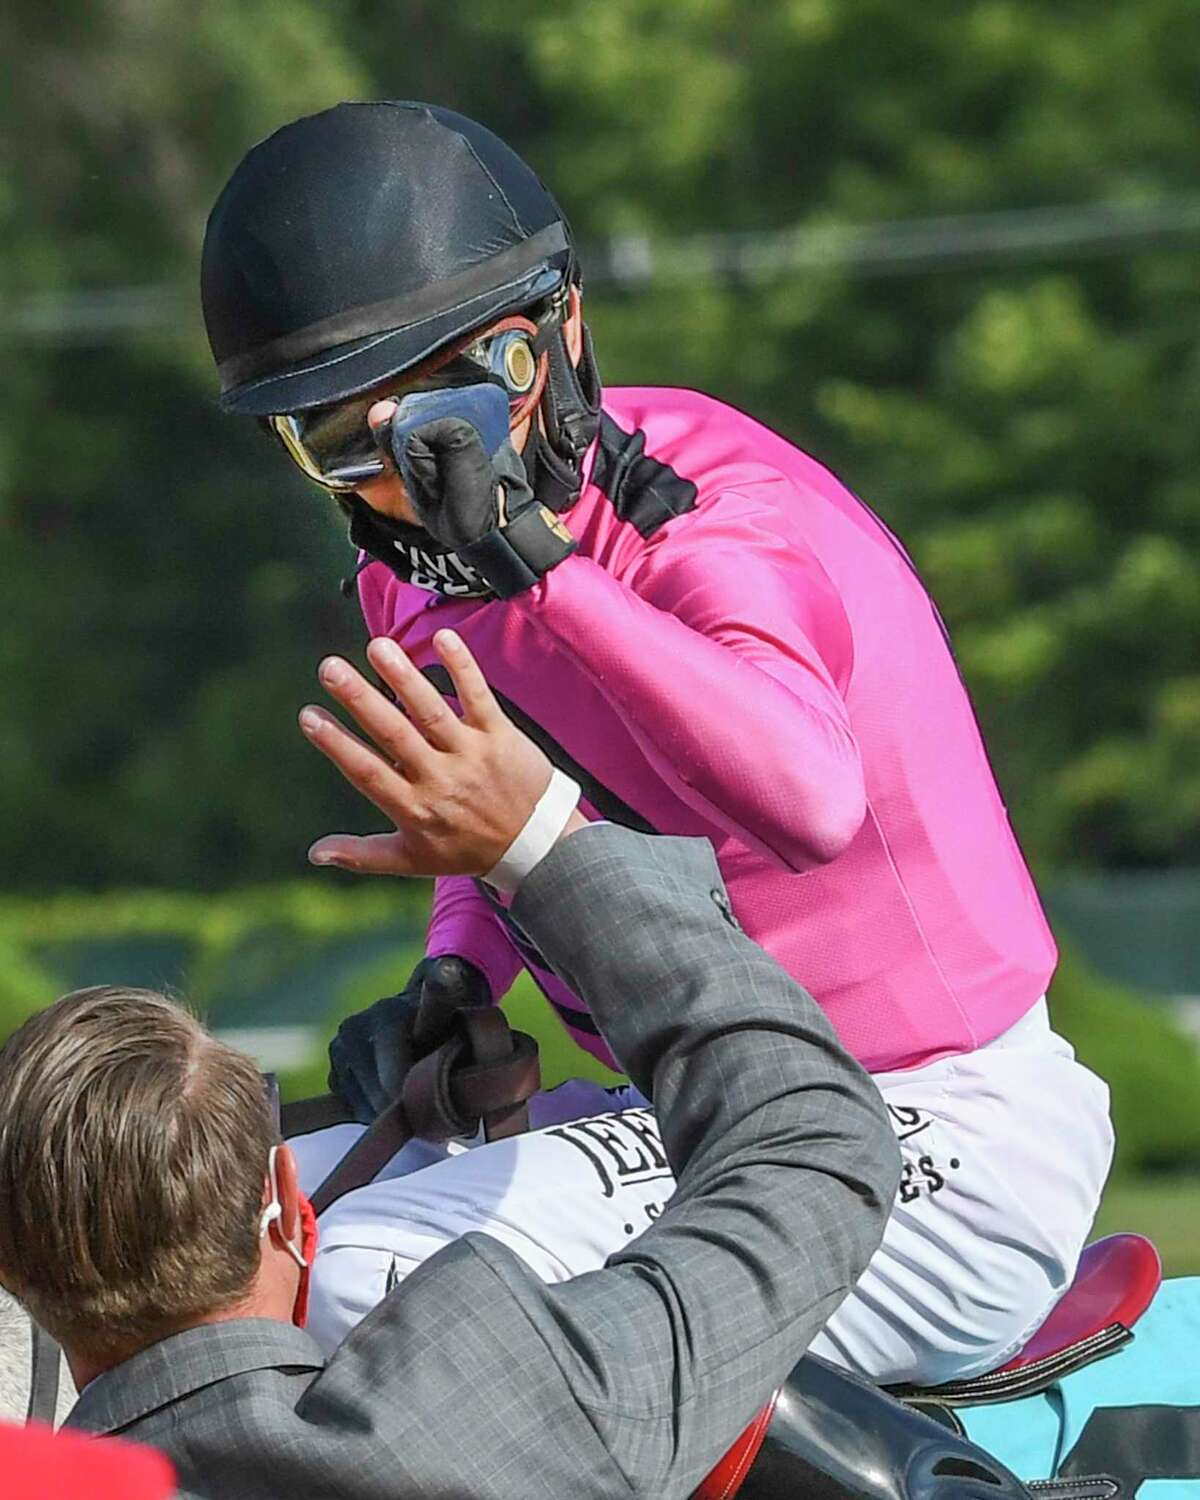 Jockey John Velazquez gets an air high five from assistant trainer Jaime Begg after he rode Jack and Noah to the win in the 2nd running of The Mahony Wednesday Aug.26, 2020 at the Saratoga Race Course in Saratoga Springs, N.Y. Photo by Skip Dickstein/Special to the Times Union